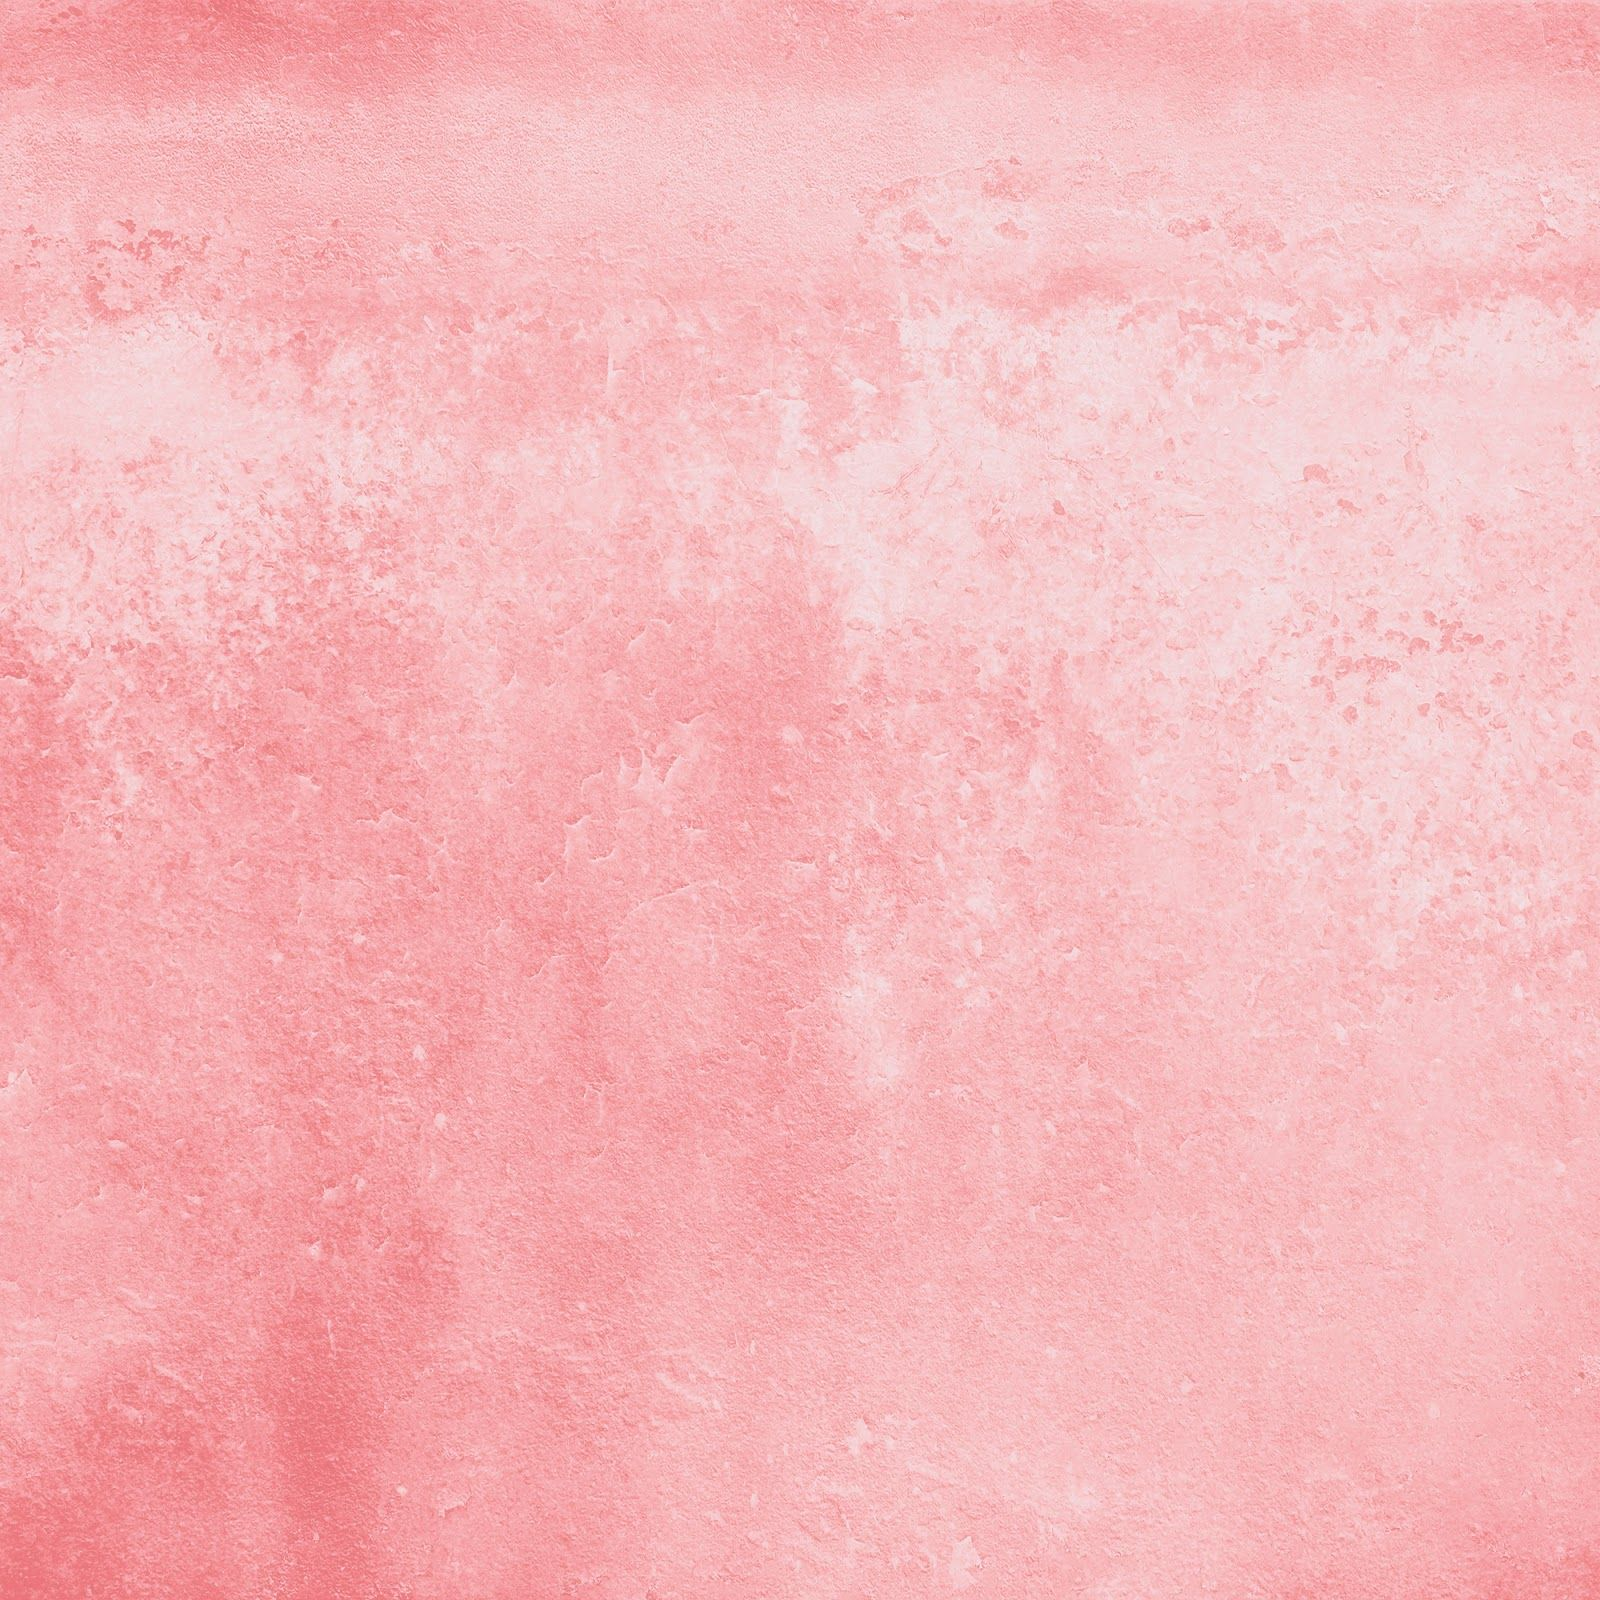 1600x1600 Solid Pink Wallpaper Pastel